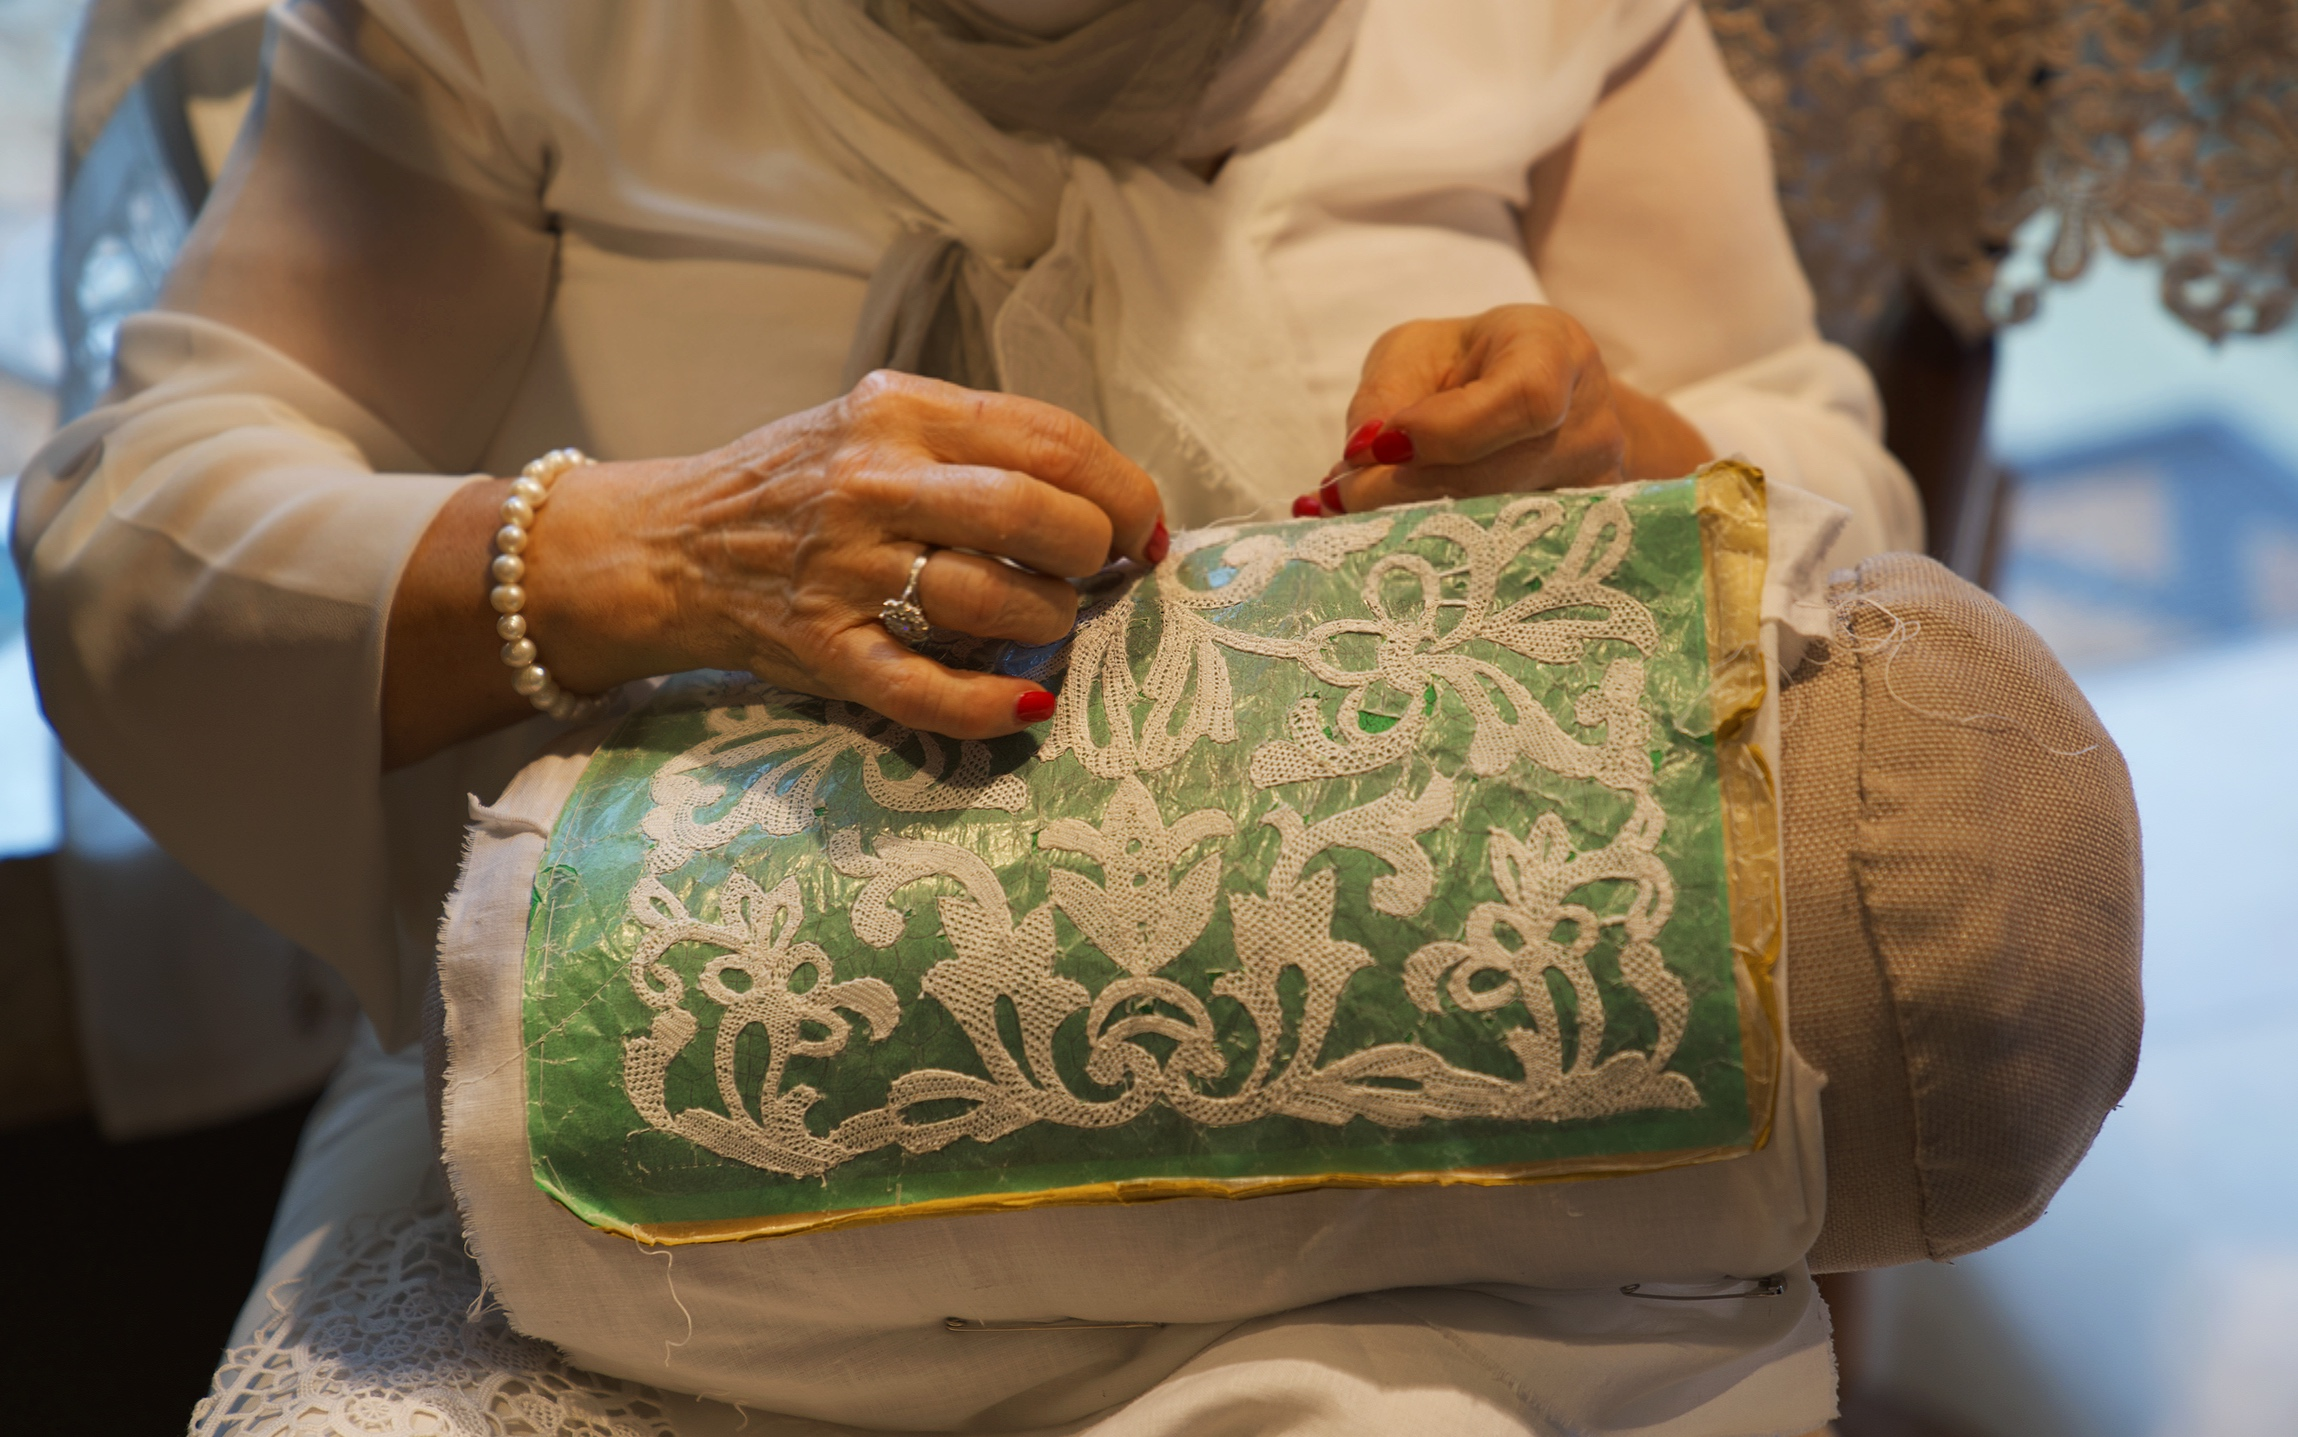 Traditional lace making in Burano.